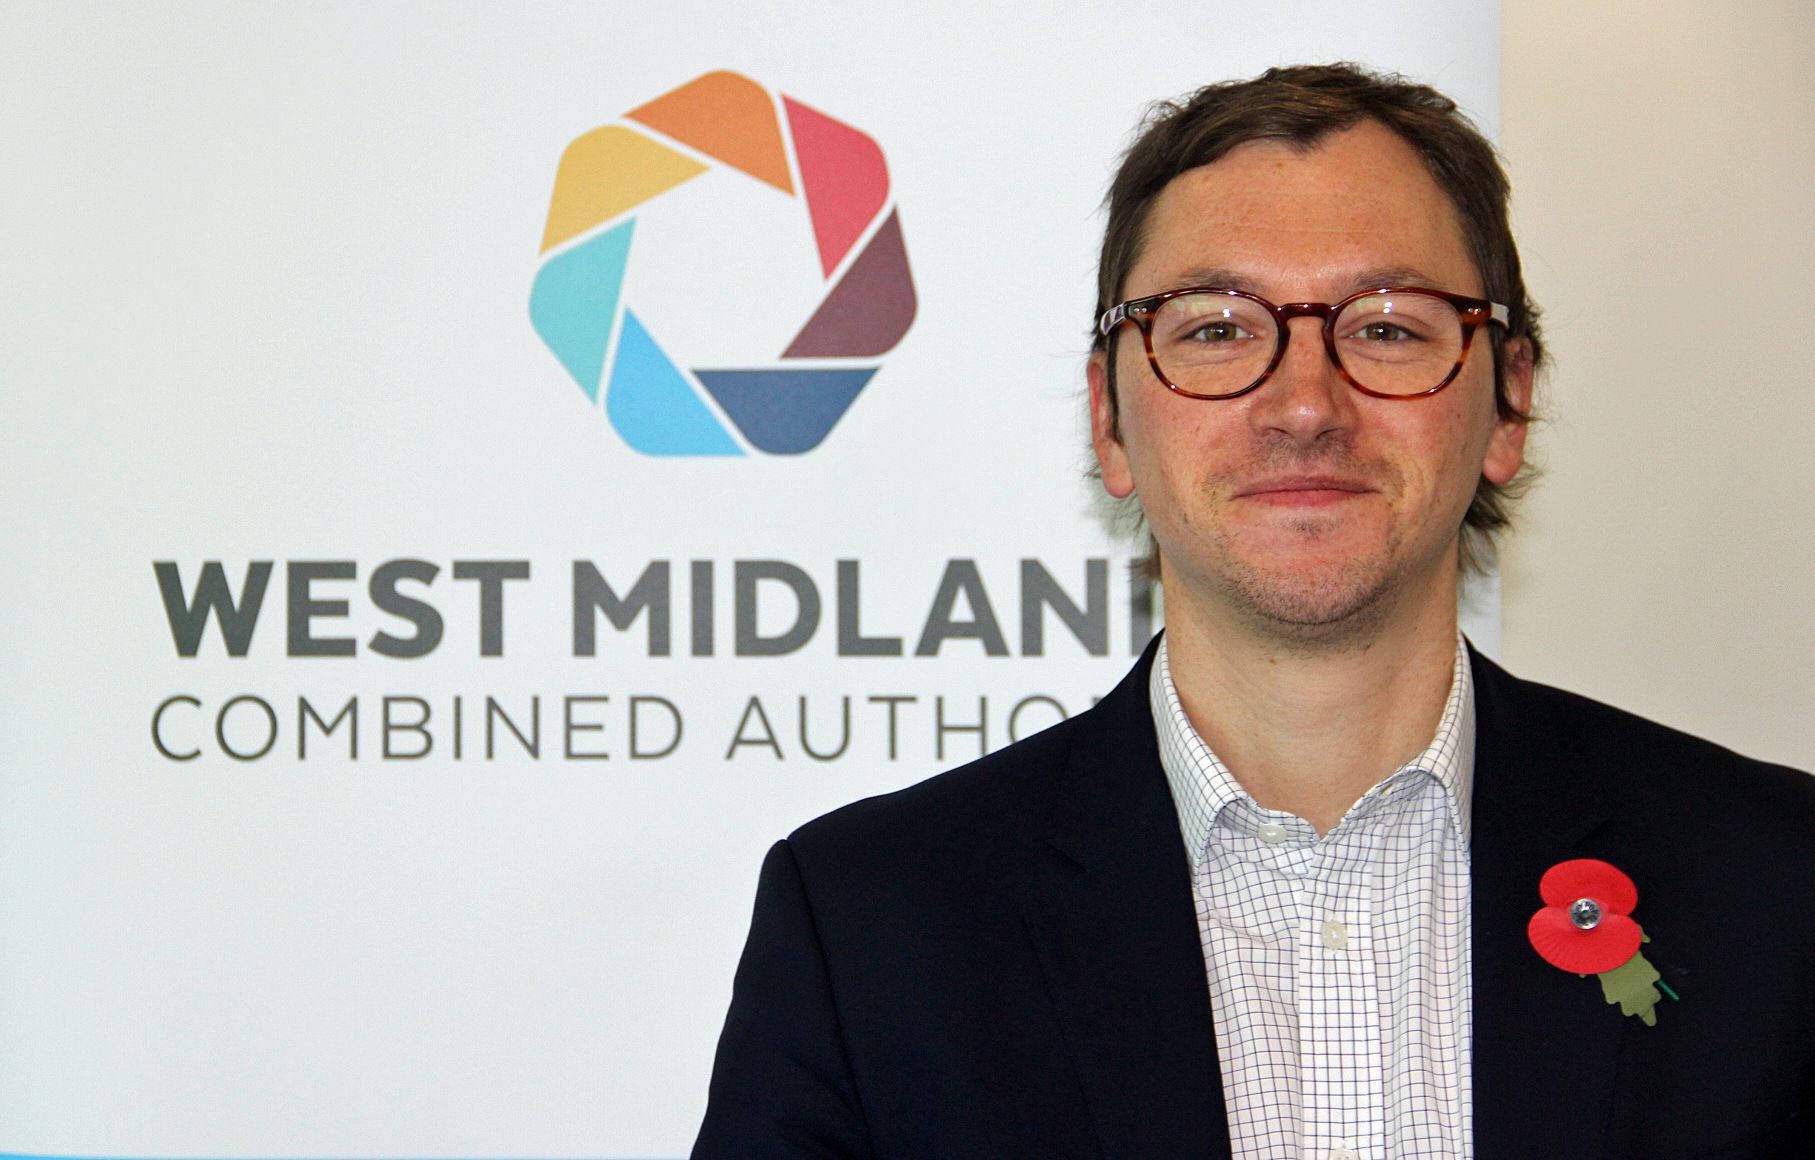 West Midlands Combined Authority appoints Dr Henry Kippin as director of public service reform